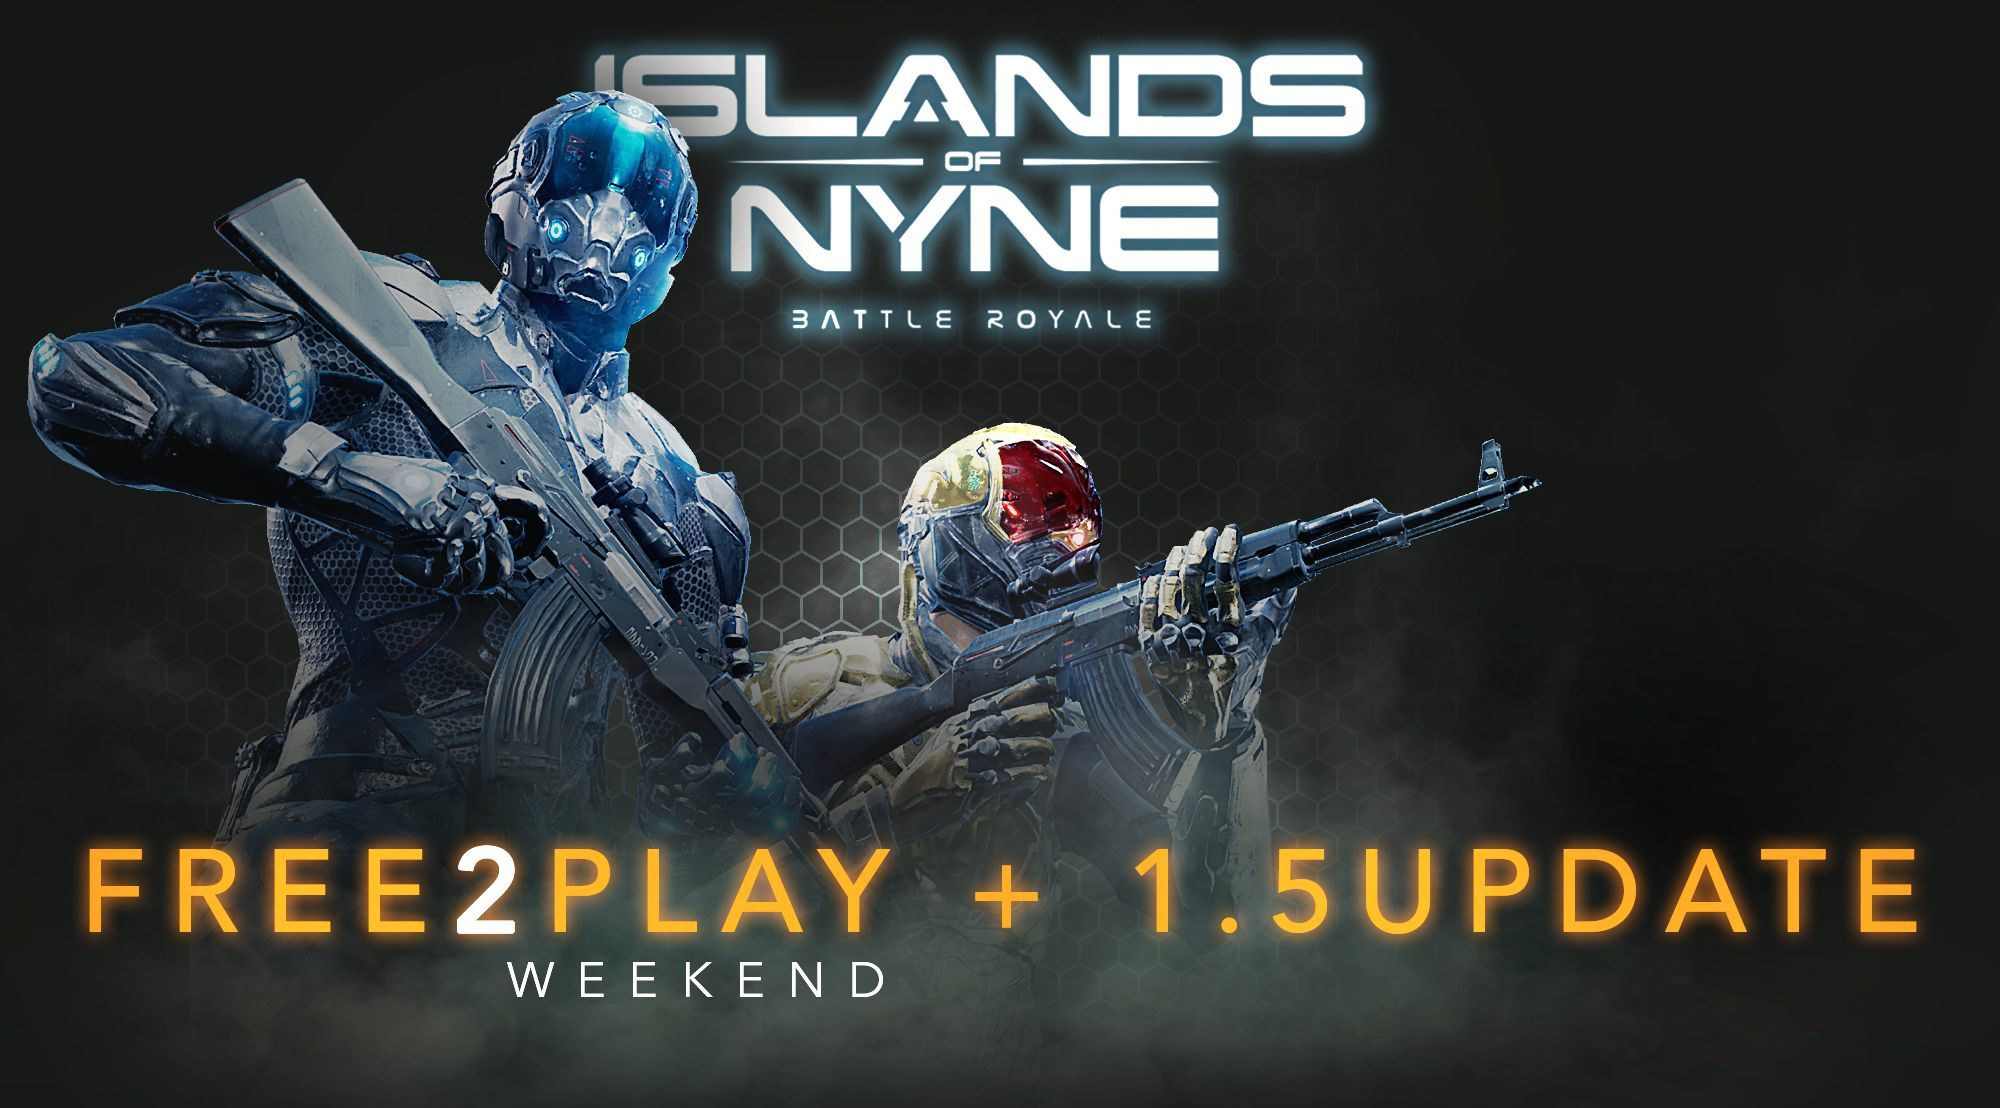 Islands Of Nyne Battle Royale On Steam Bundle 2 Pcs Wallet Idr 400000 F2p Weekend 15 Update Is Now Live